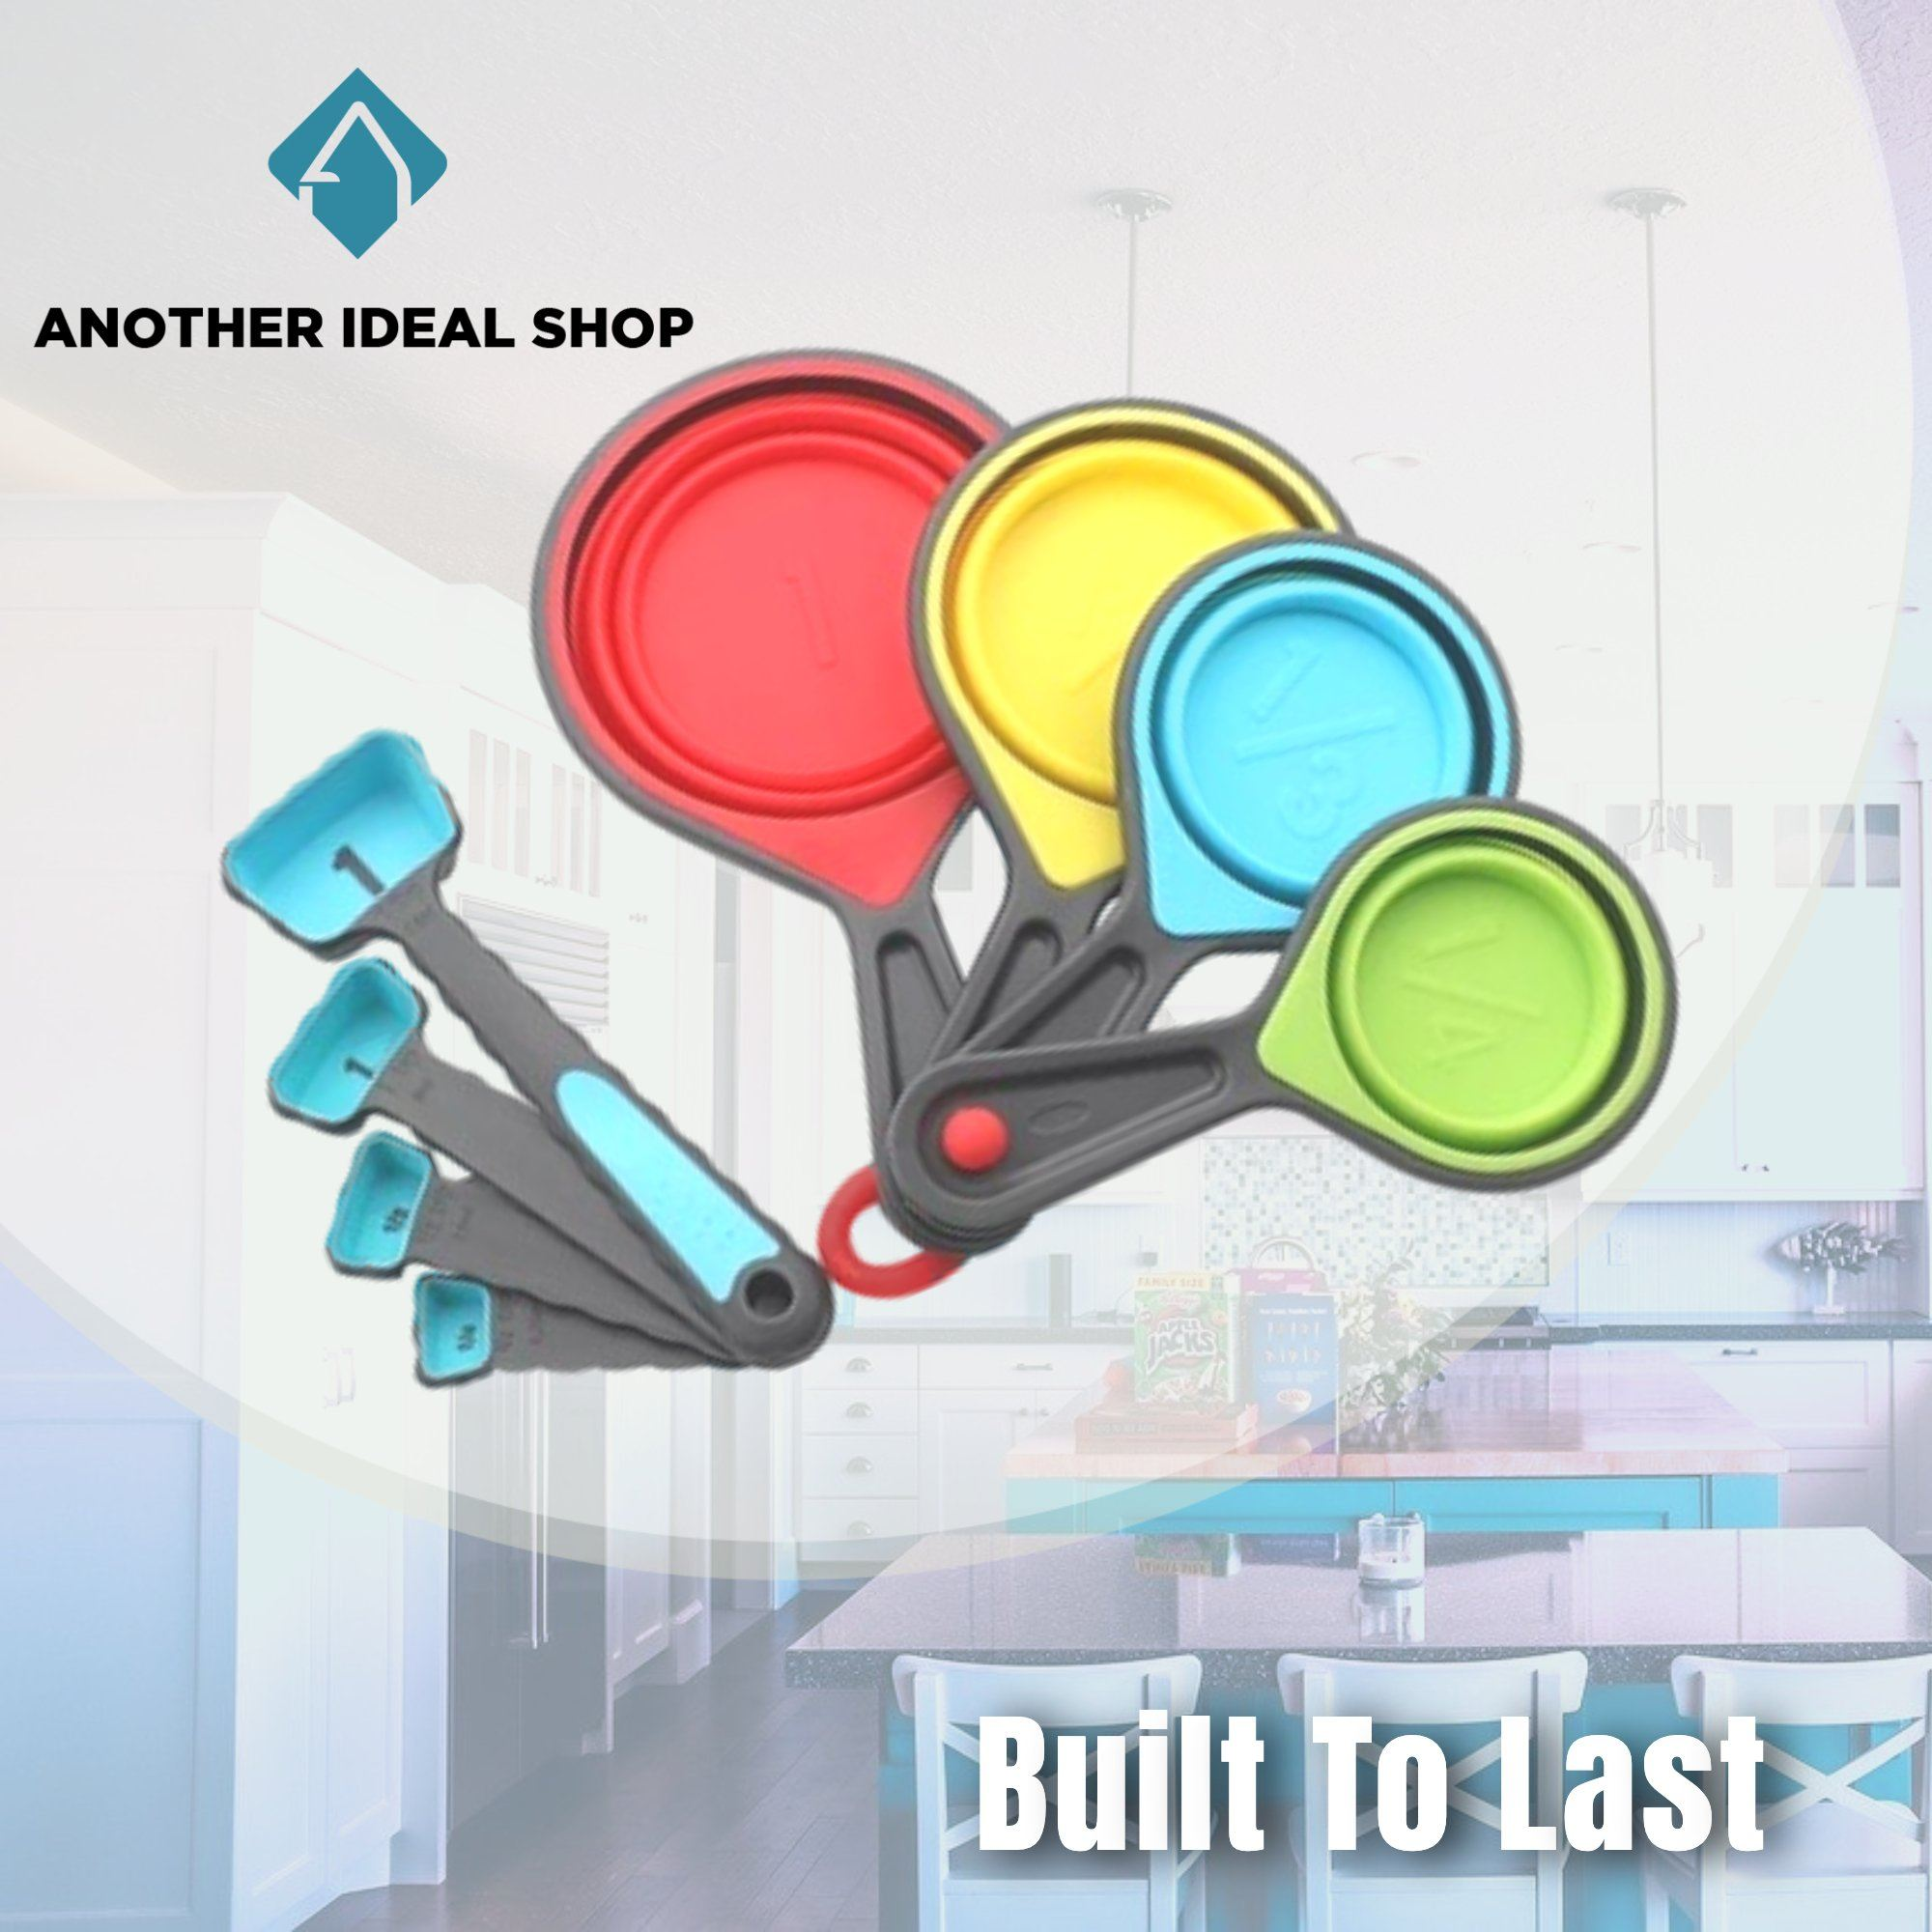 Collapsible Silicone Measuring Cup Another Ideal Shop Blue (8pcs/set)